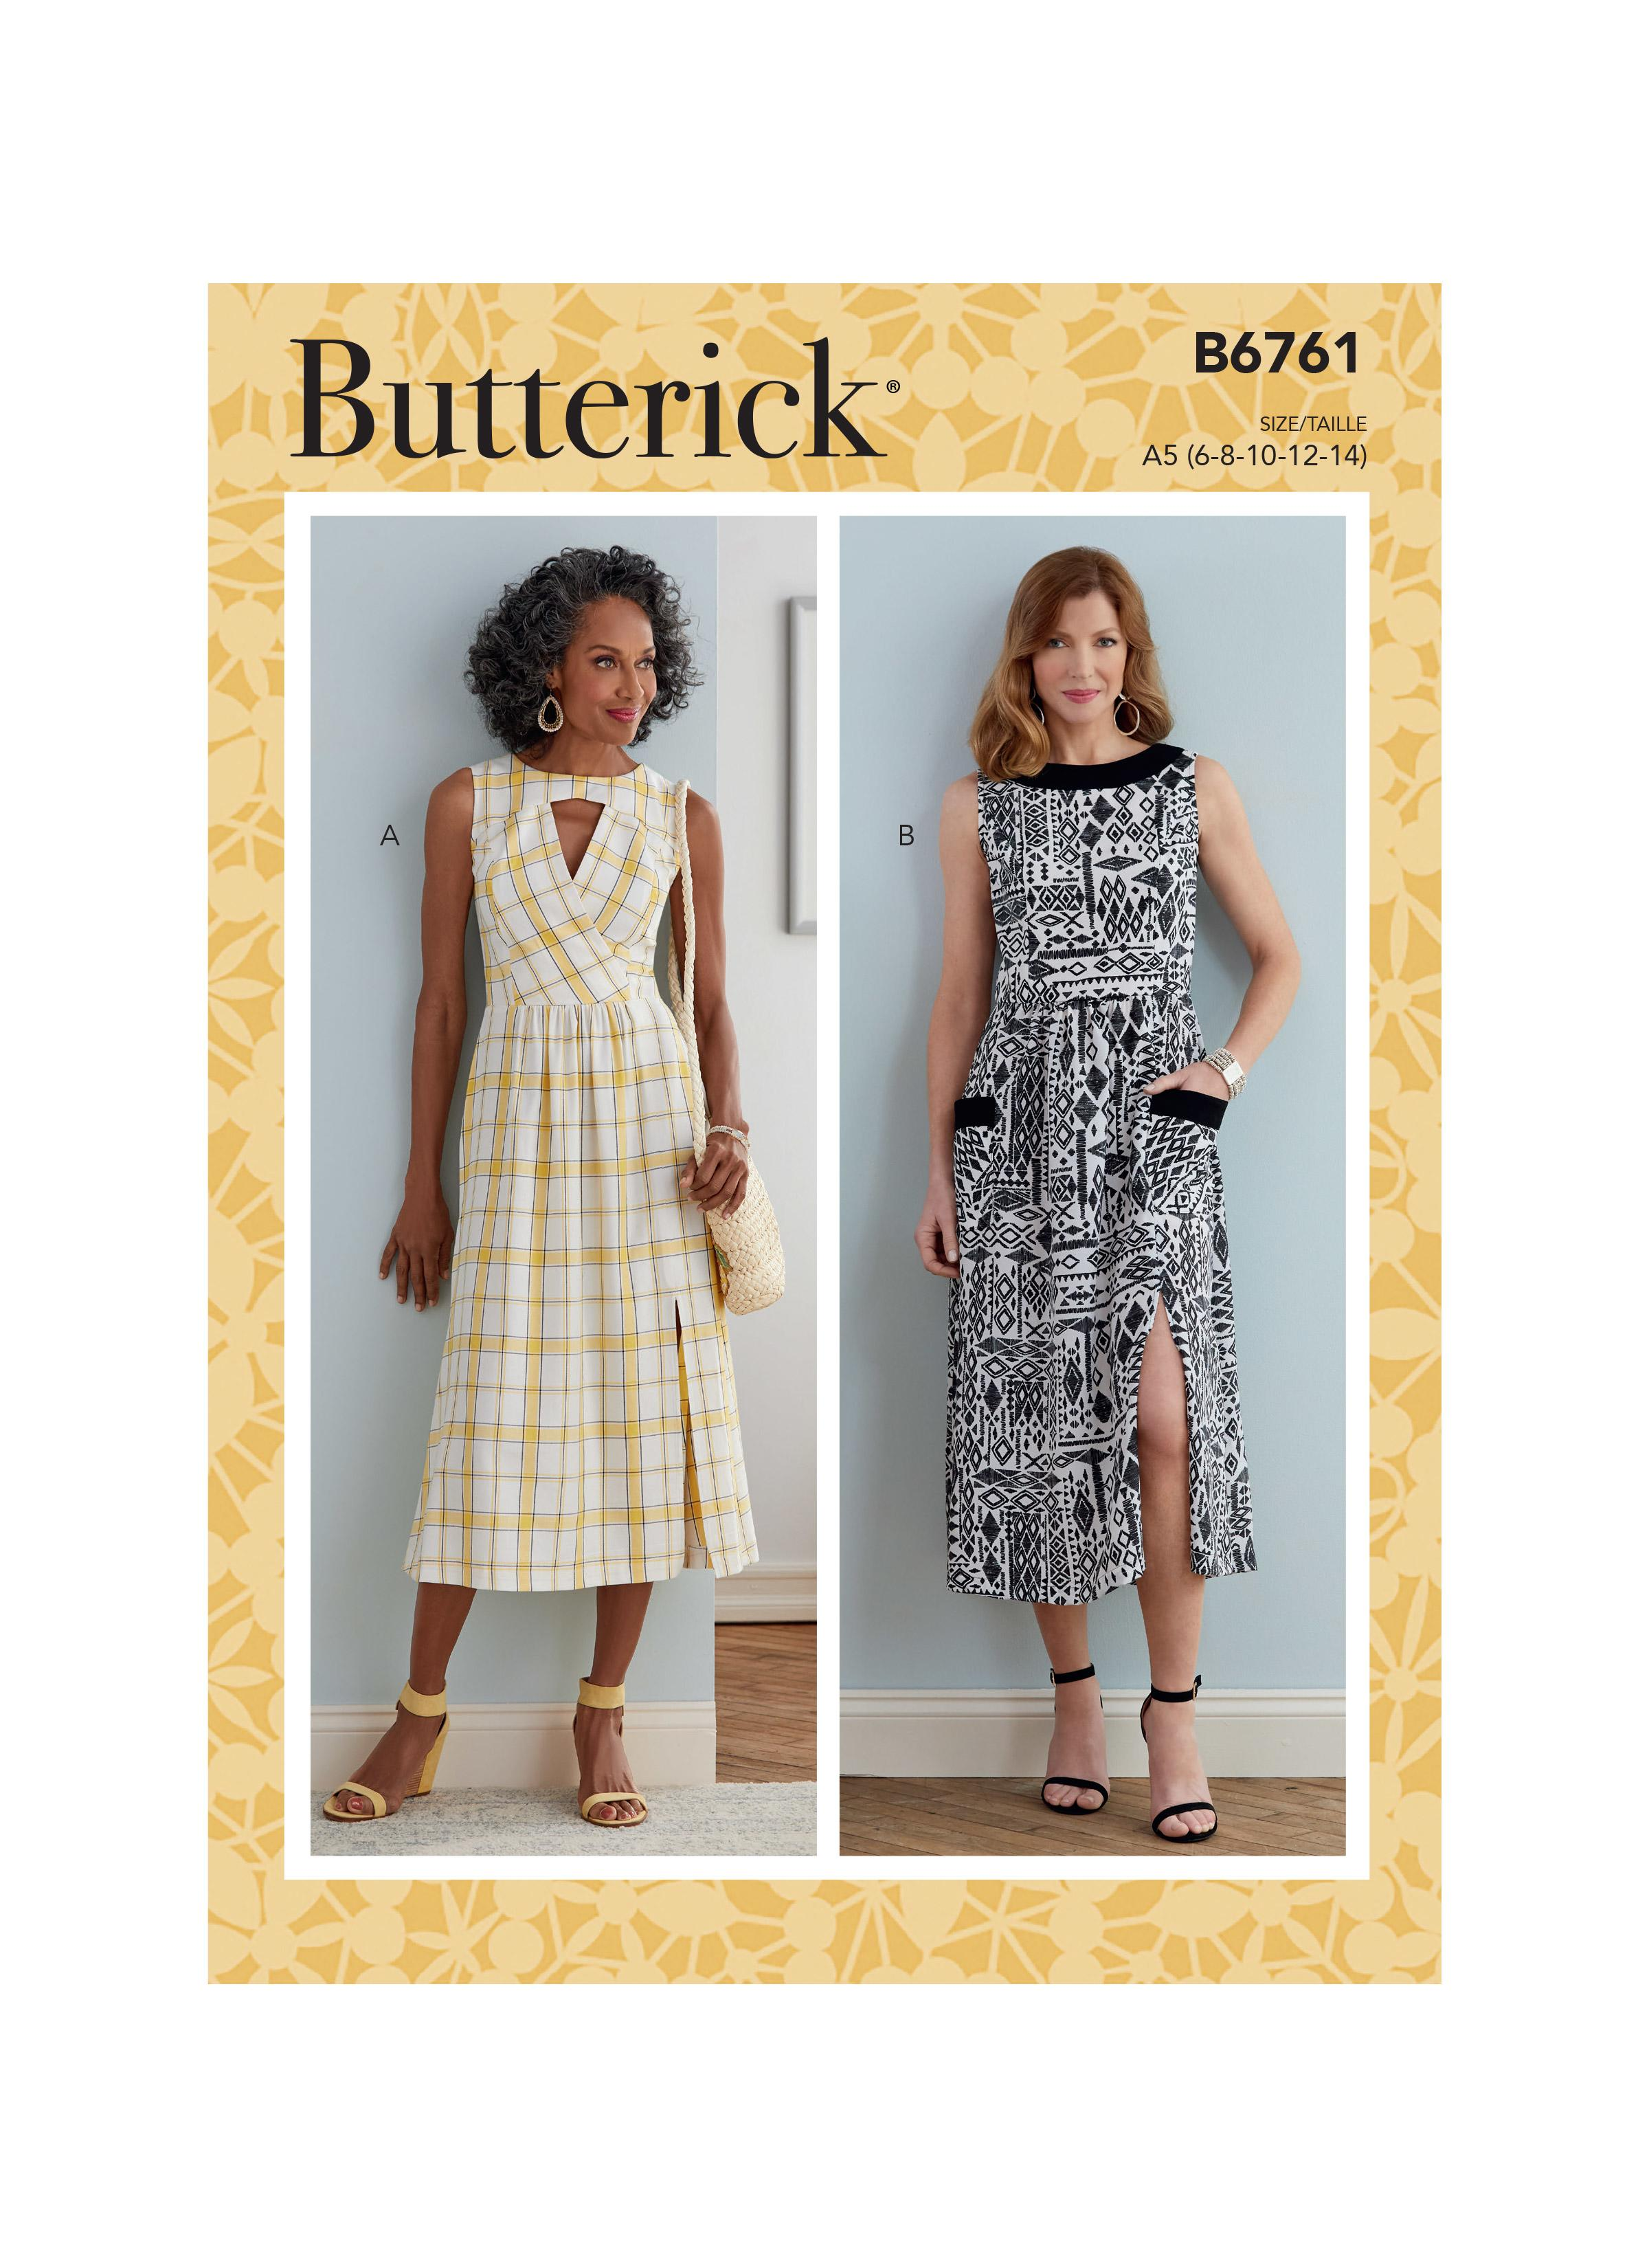 Butterick B6761 Misses' & Misses' Petite Dress